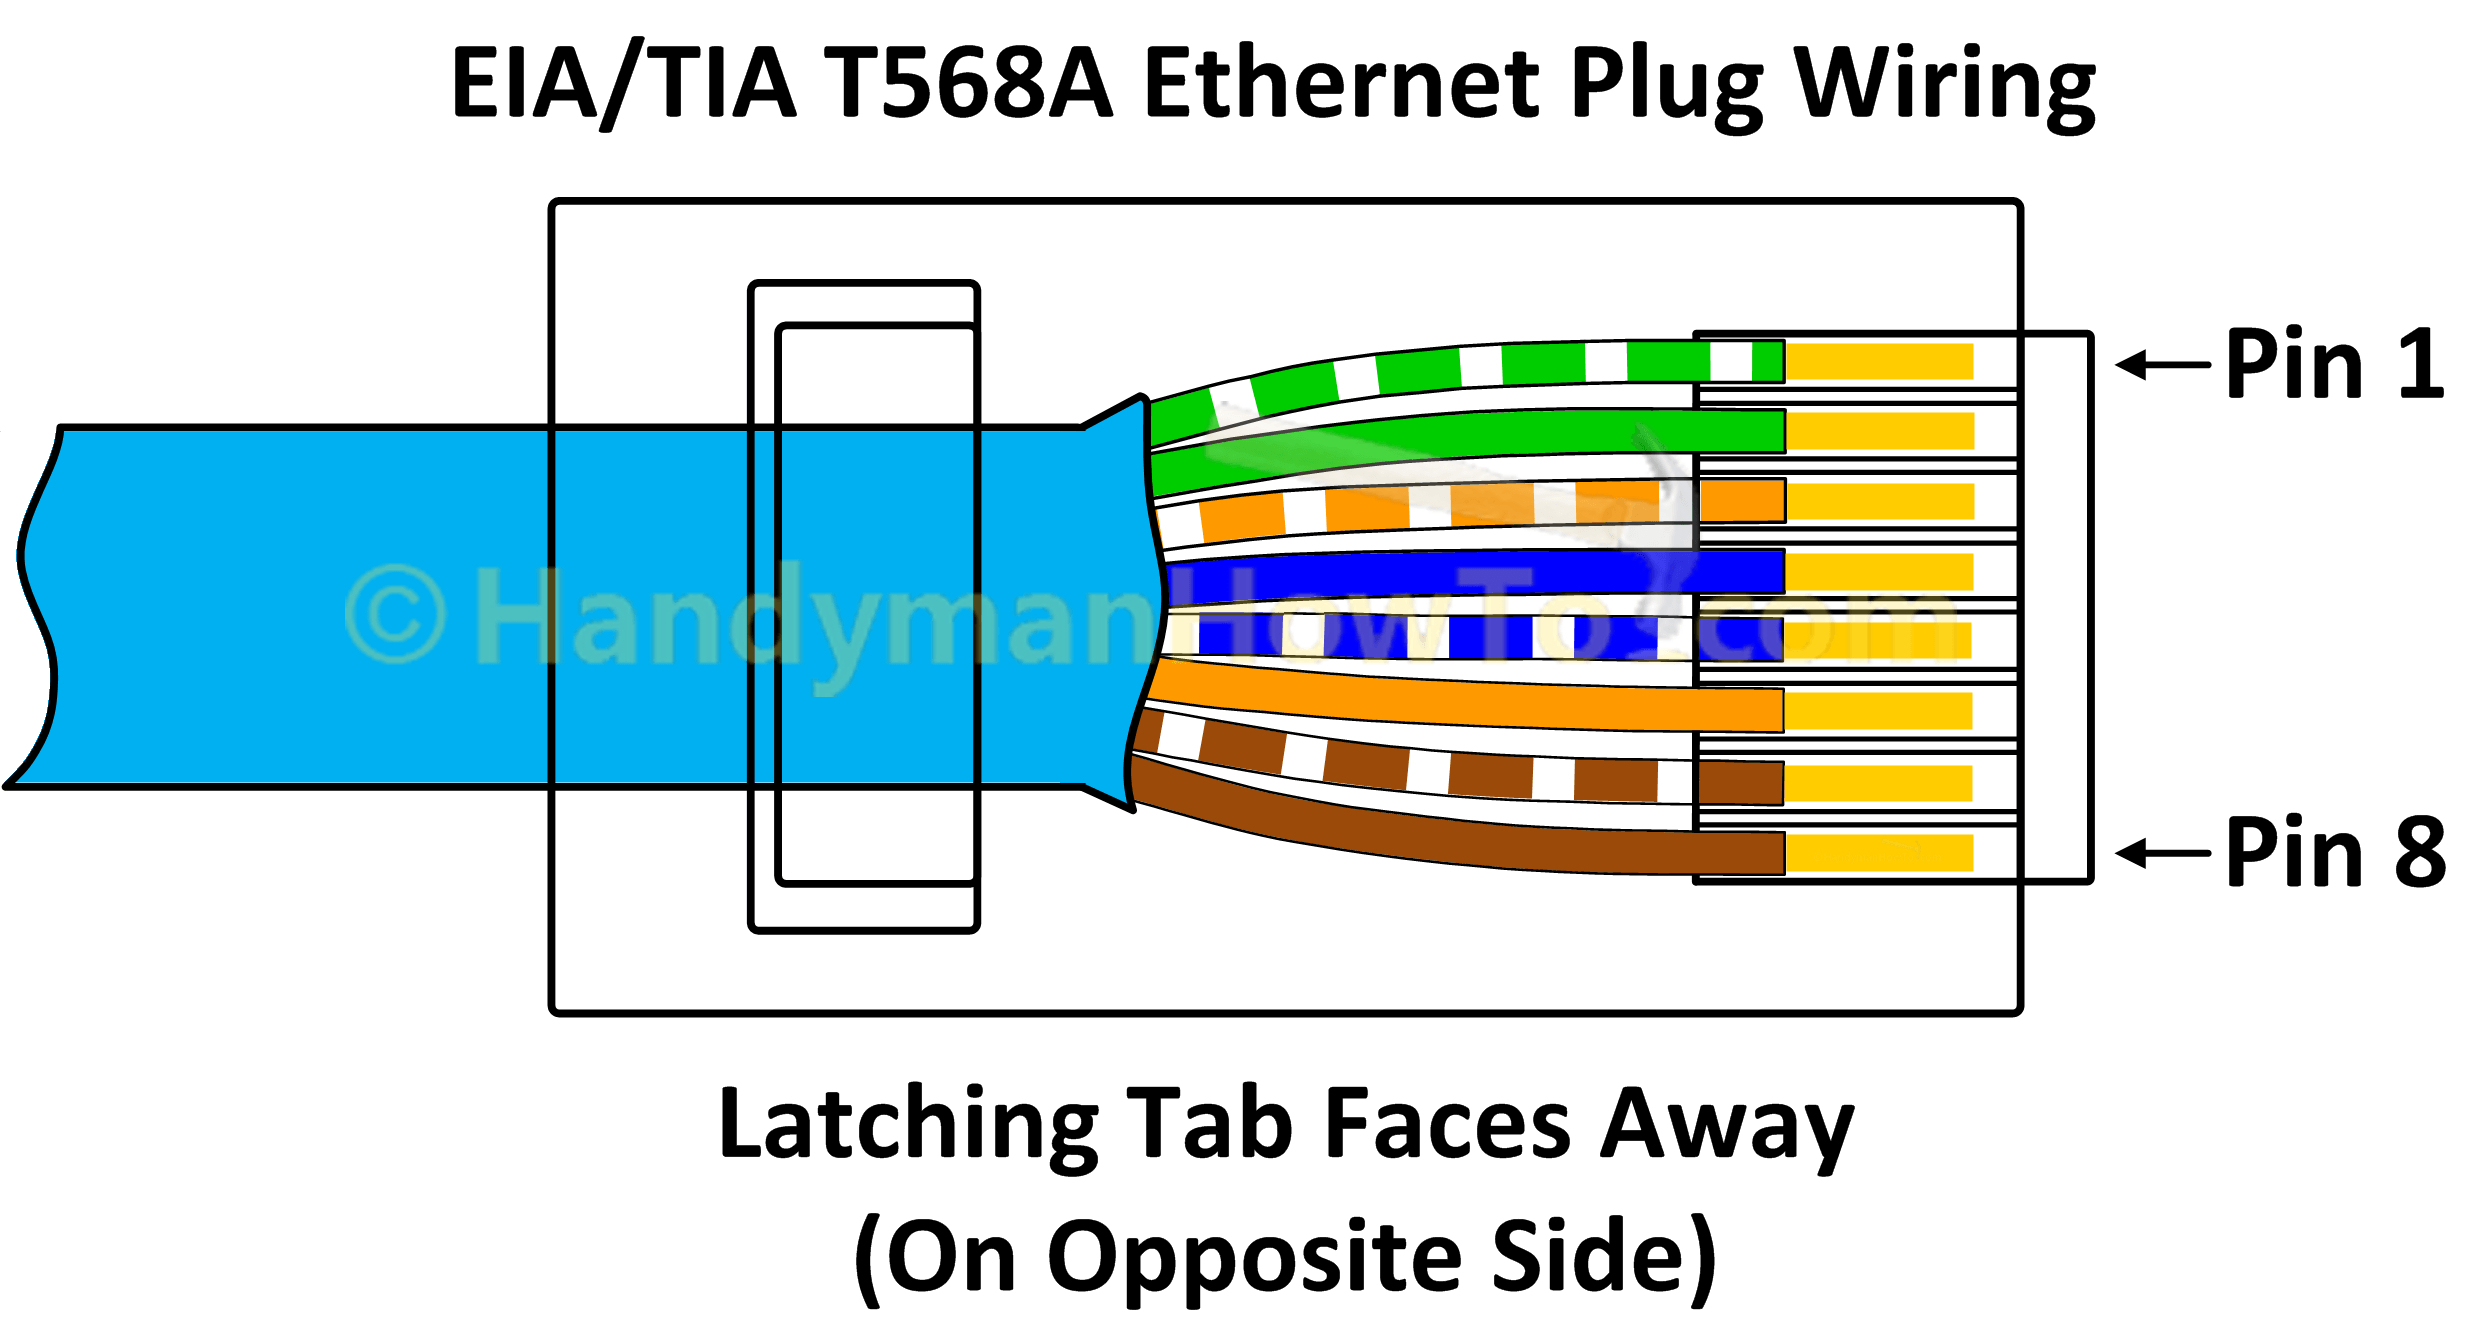 Wiring Diagram For Cat6 Cable - Wiring Diagram Detailed - Cat6 Wiring Diagram